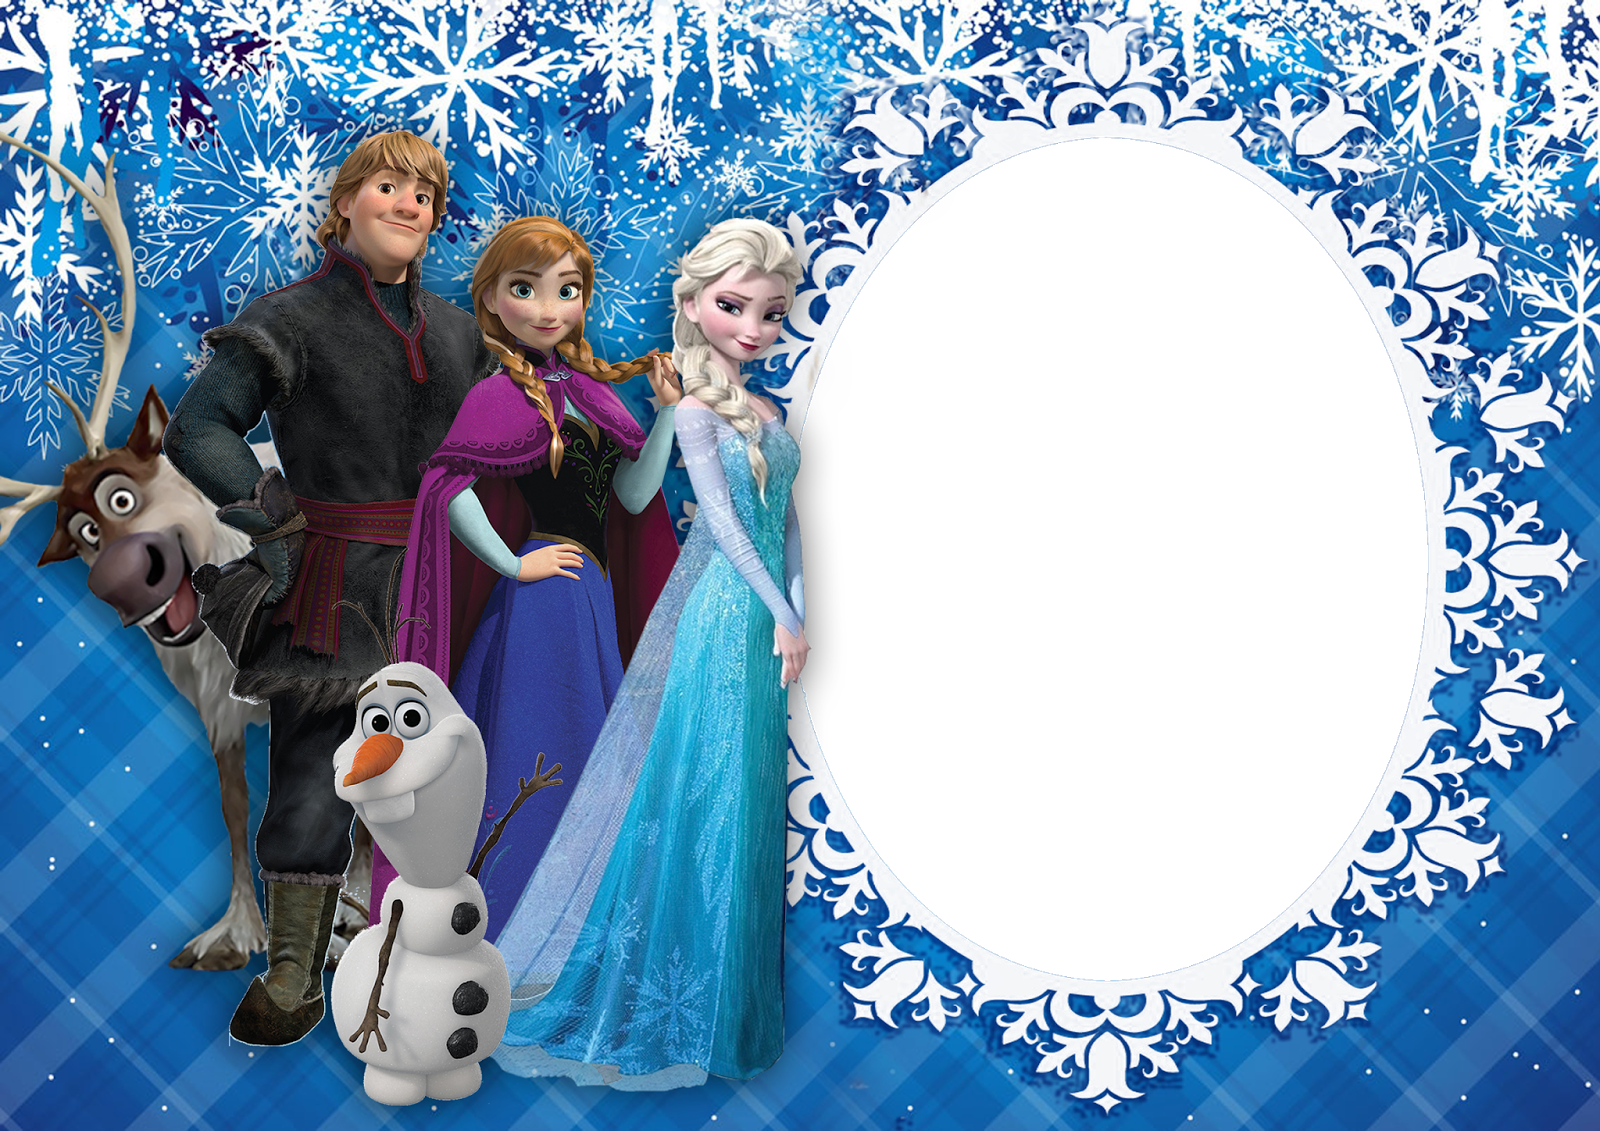 Open Full Size Free Icons Png Moldura Para Foto Frozen Download Transparent Png Image In 2021 Frozen Birthday Theme Frozen Themed Birthday Party Frozen Decorations